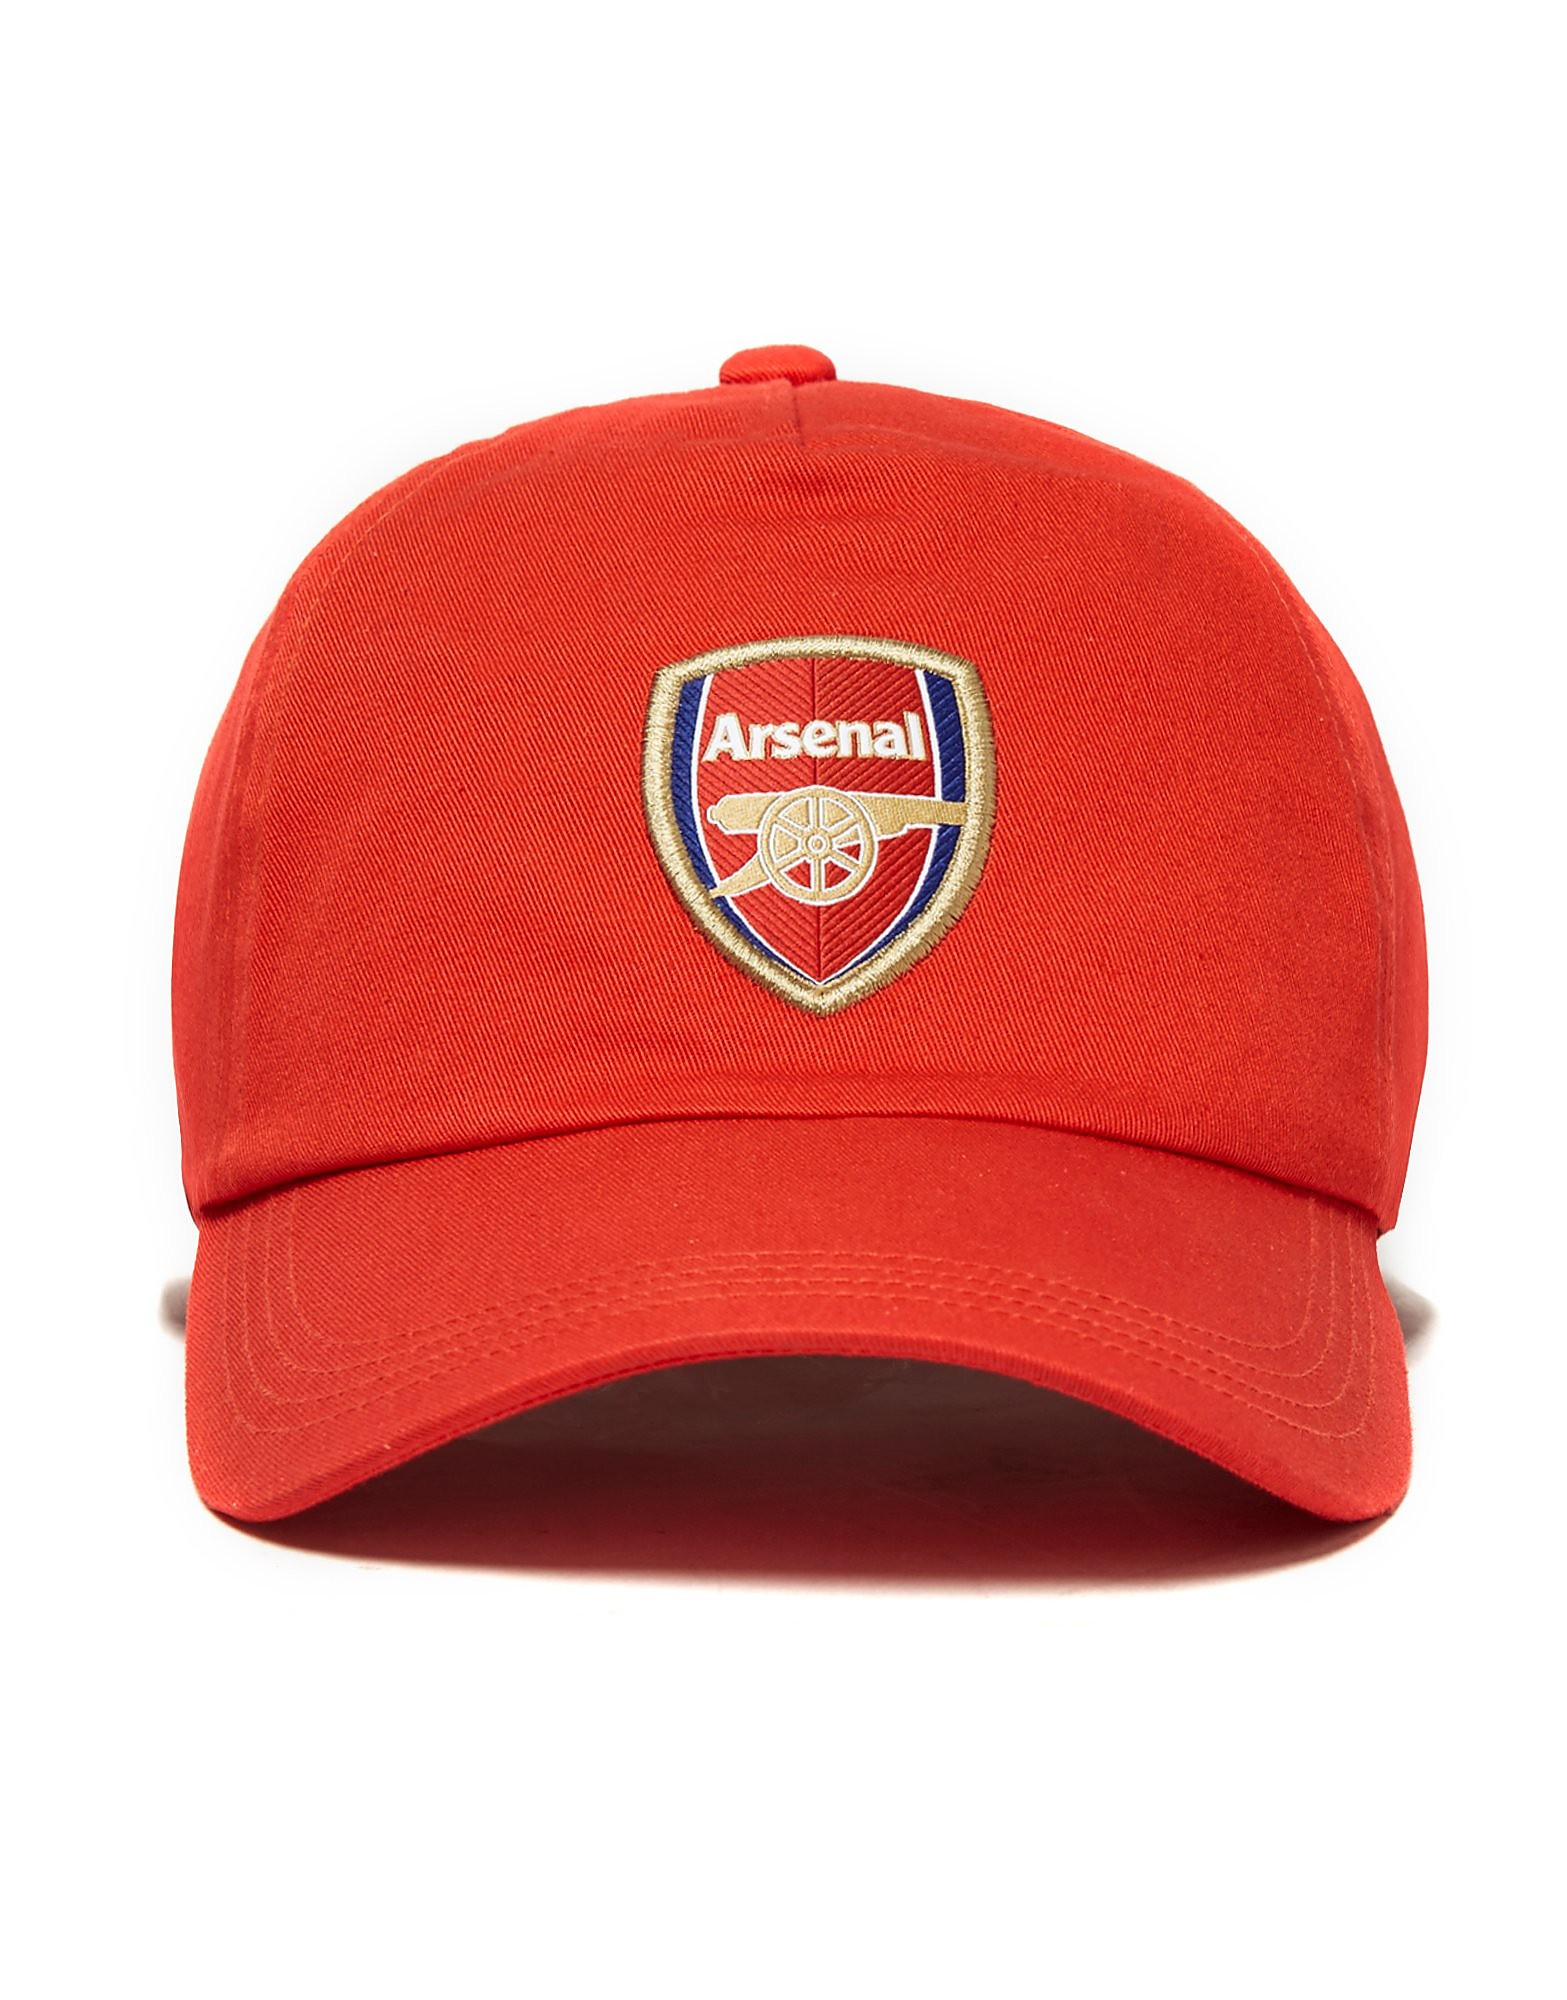 PUMA Arsenal Cap